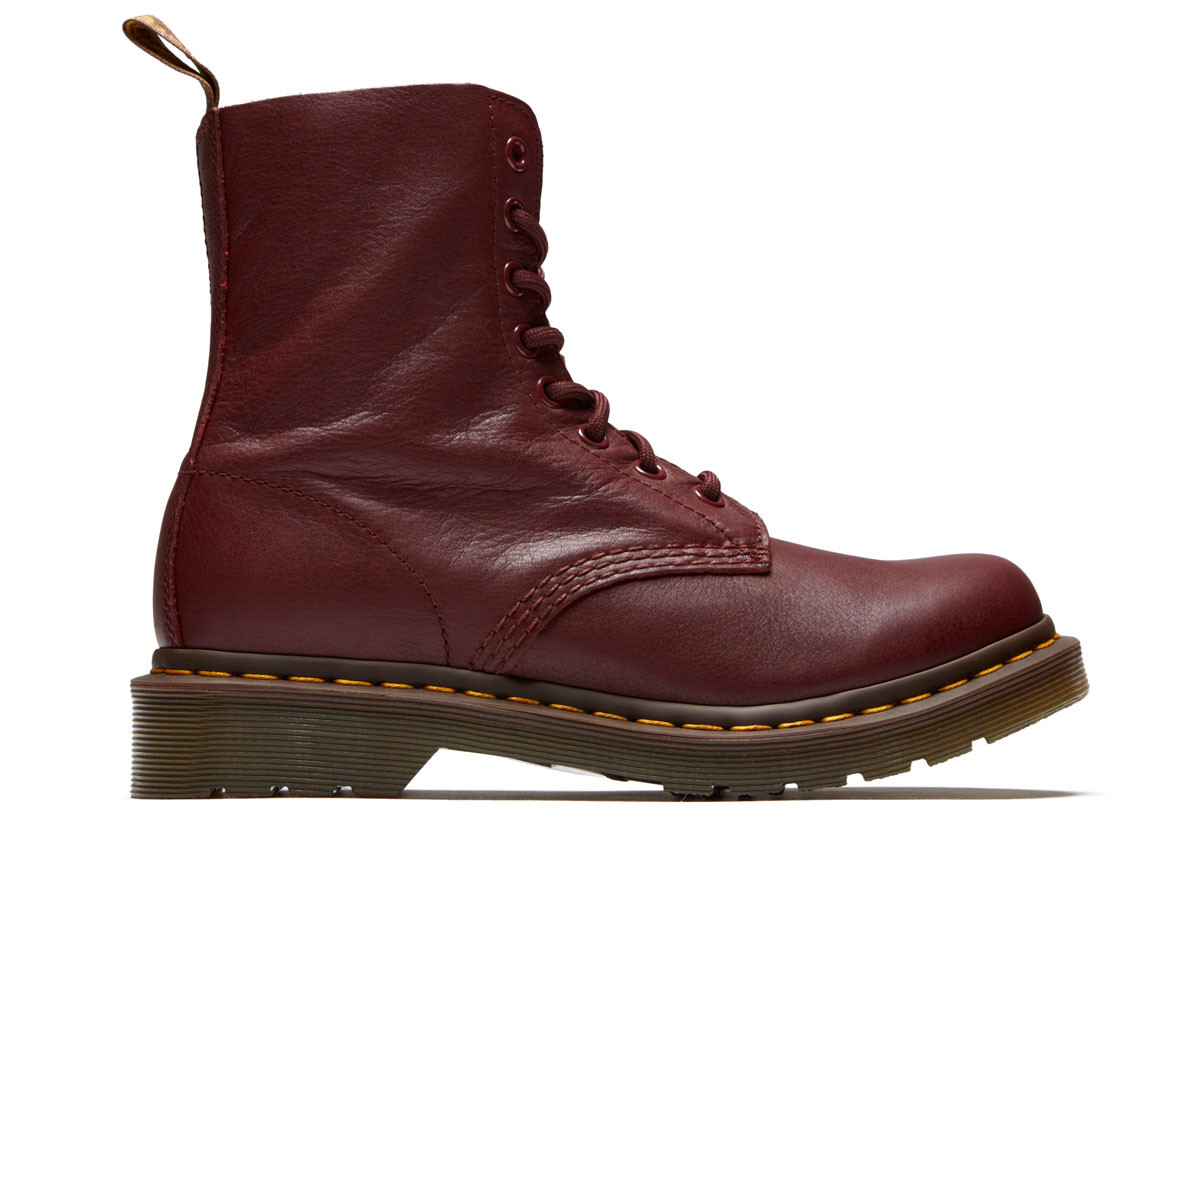 63ec21f7db836 Dr. Martens Womens 1460 8 Eye Pascal Leather Boots - Cherry Red